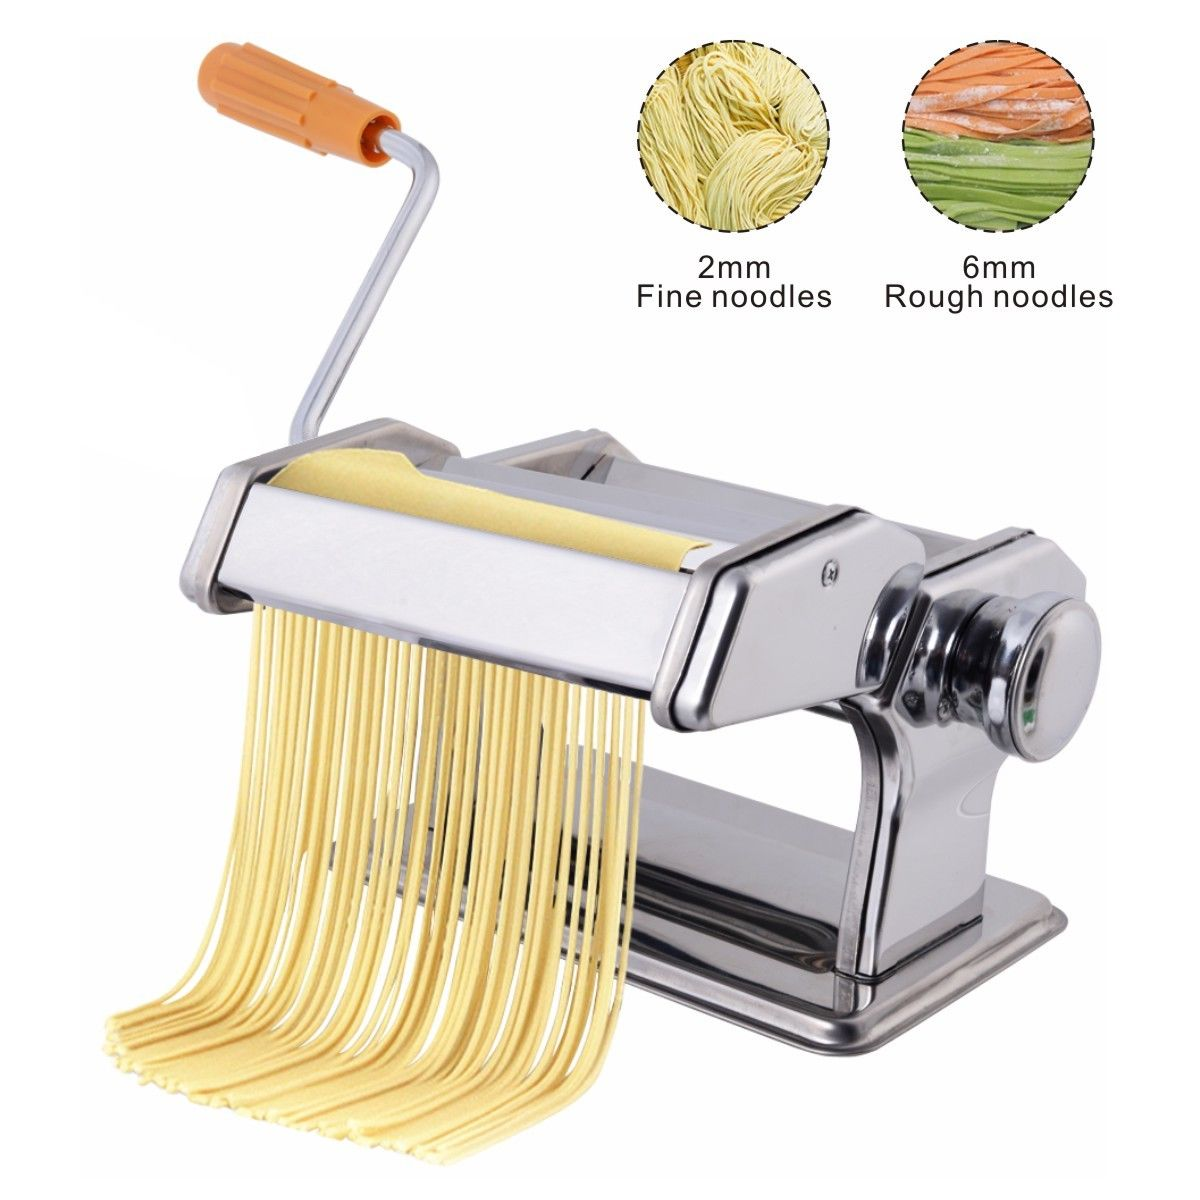 Costway Pasta Maker Roller Machine Fresh Noodle Spaghetti&Fettuccine Stainless Steel by Costway